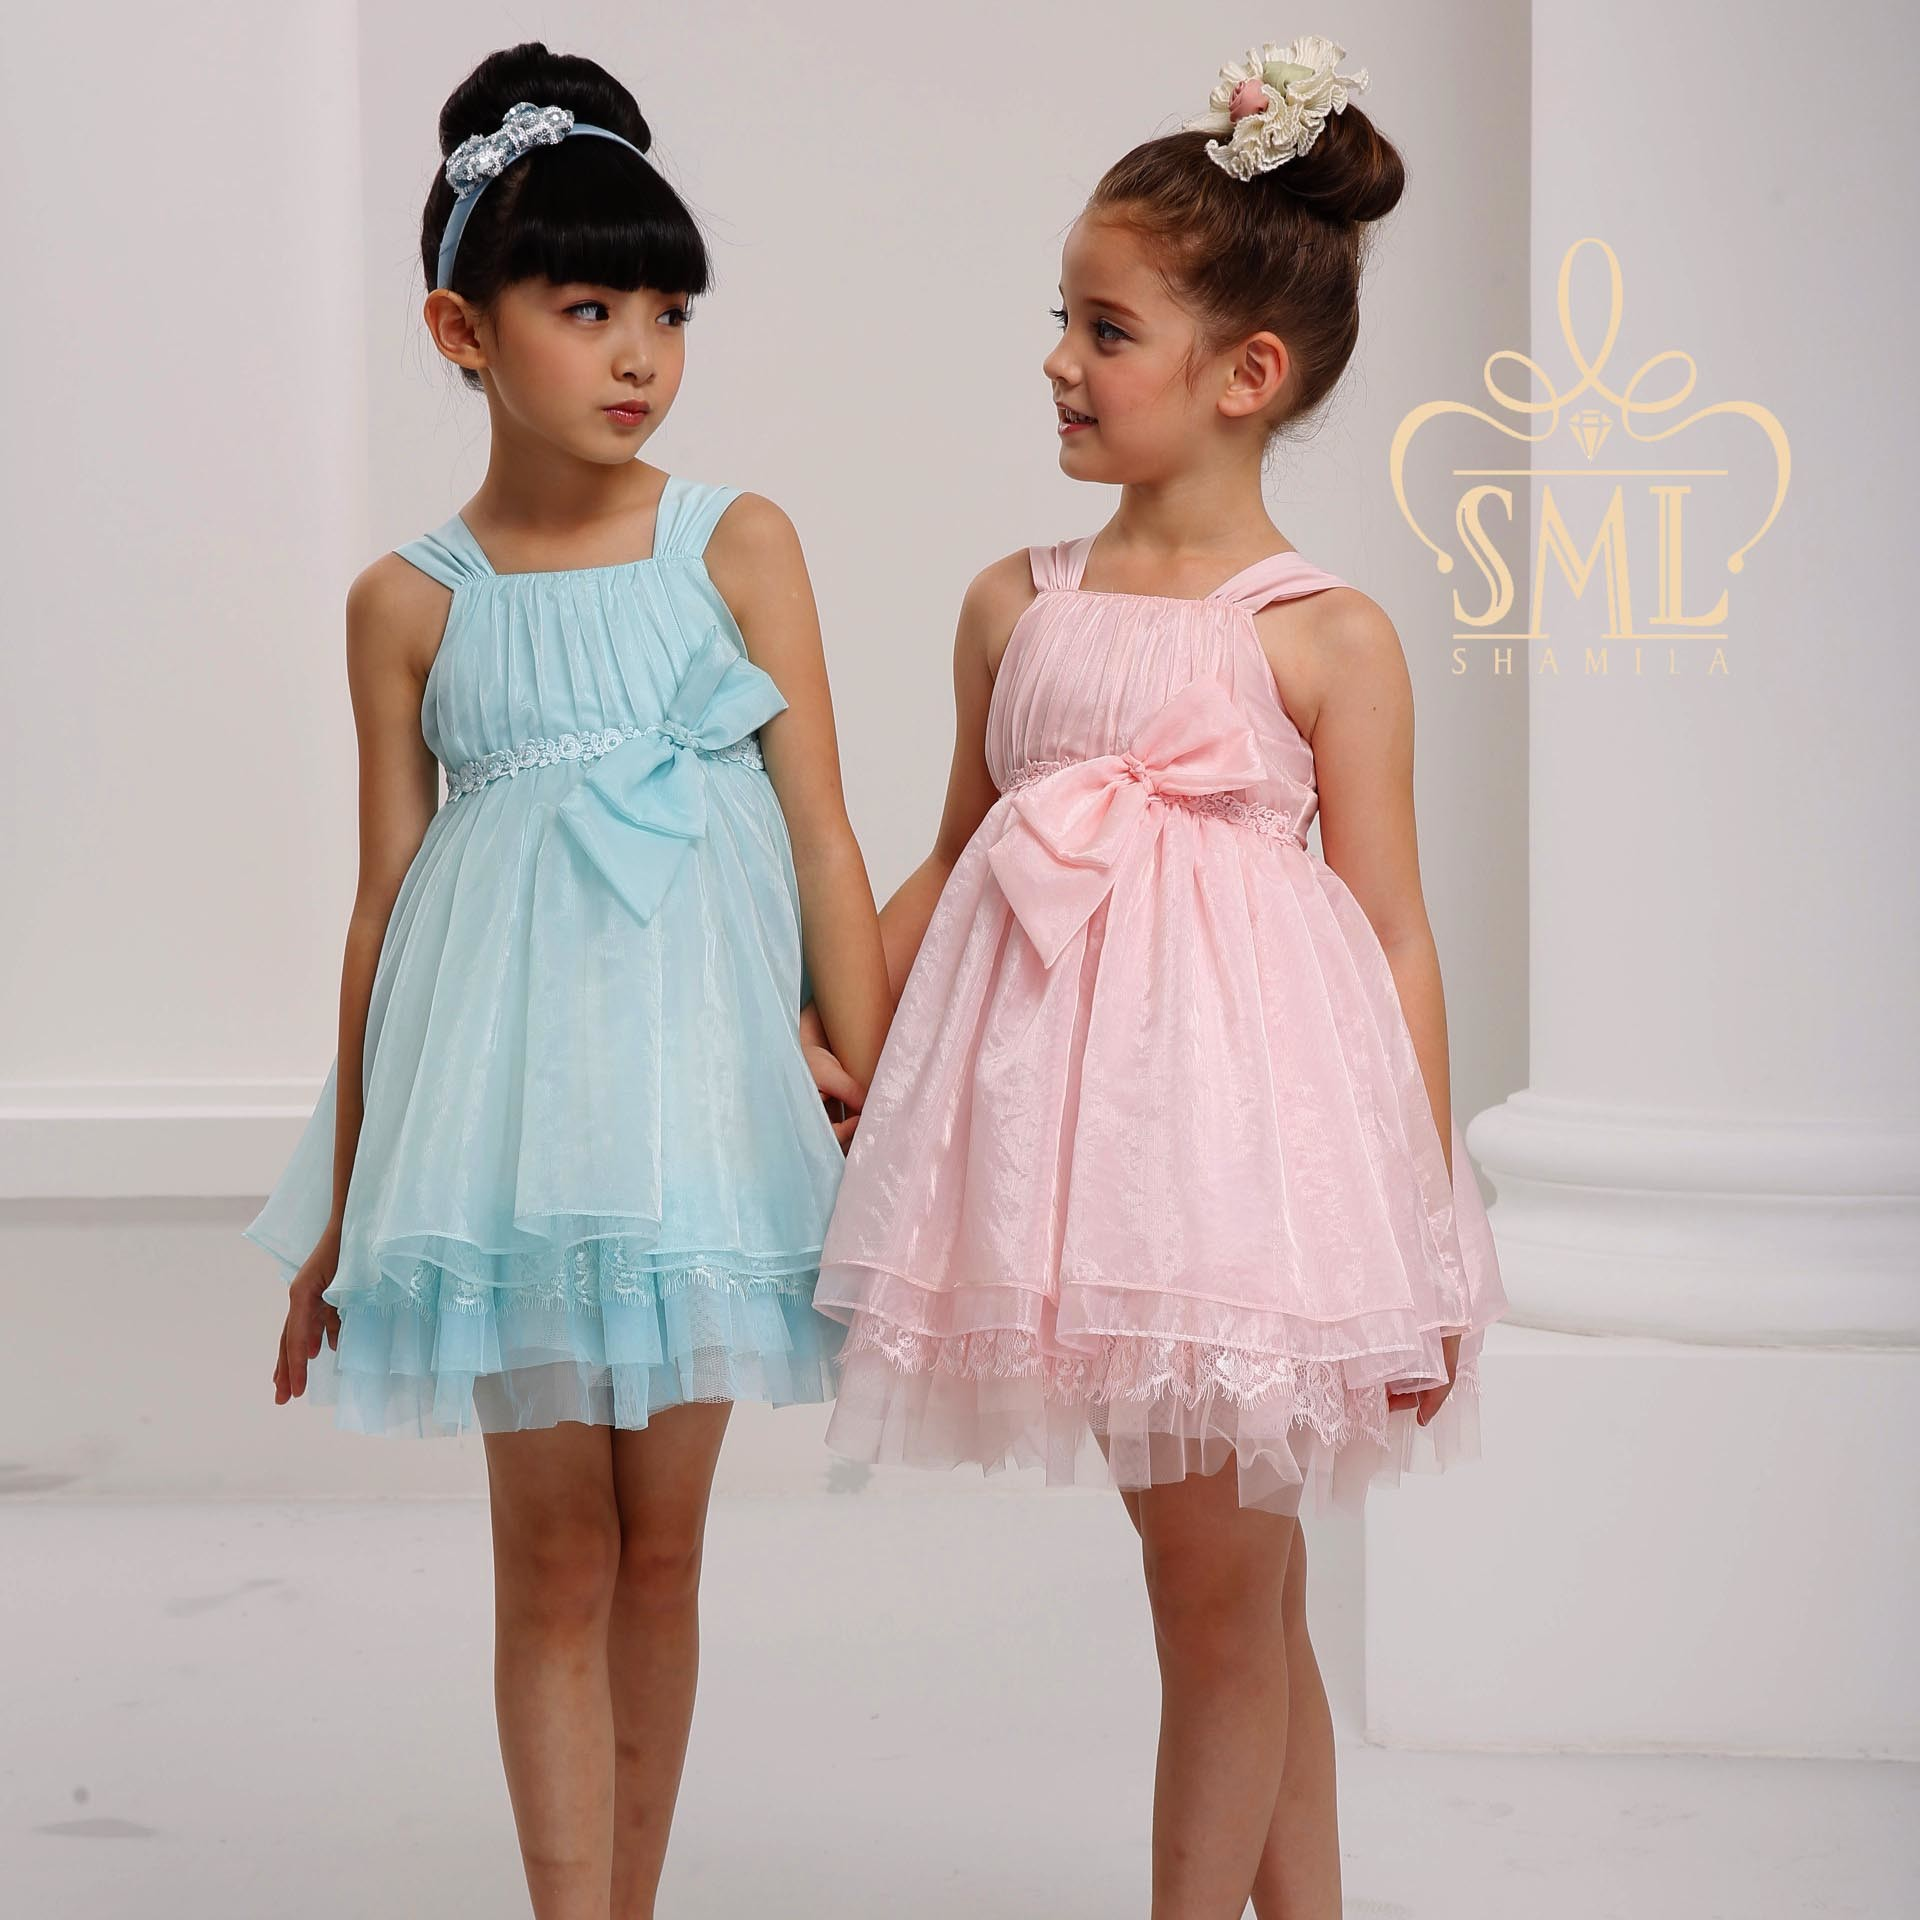 Dresses for little girls wedding for Wedding dresses for young girls